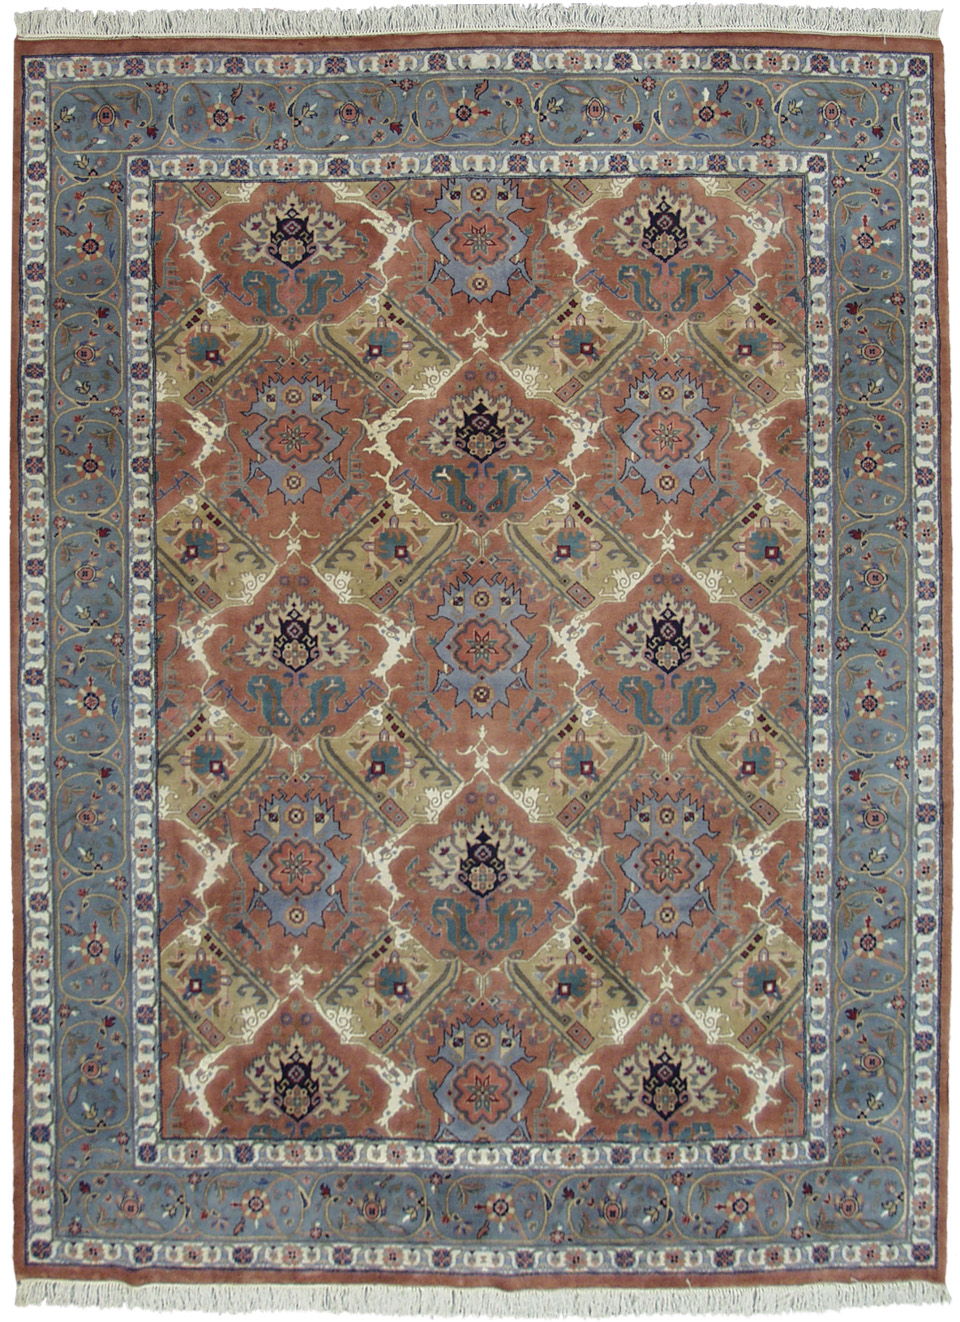 9x12 Bakshaish Design Rug